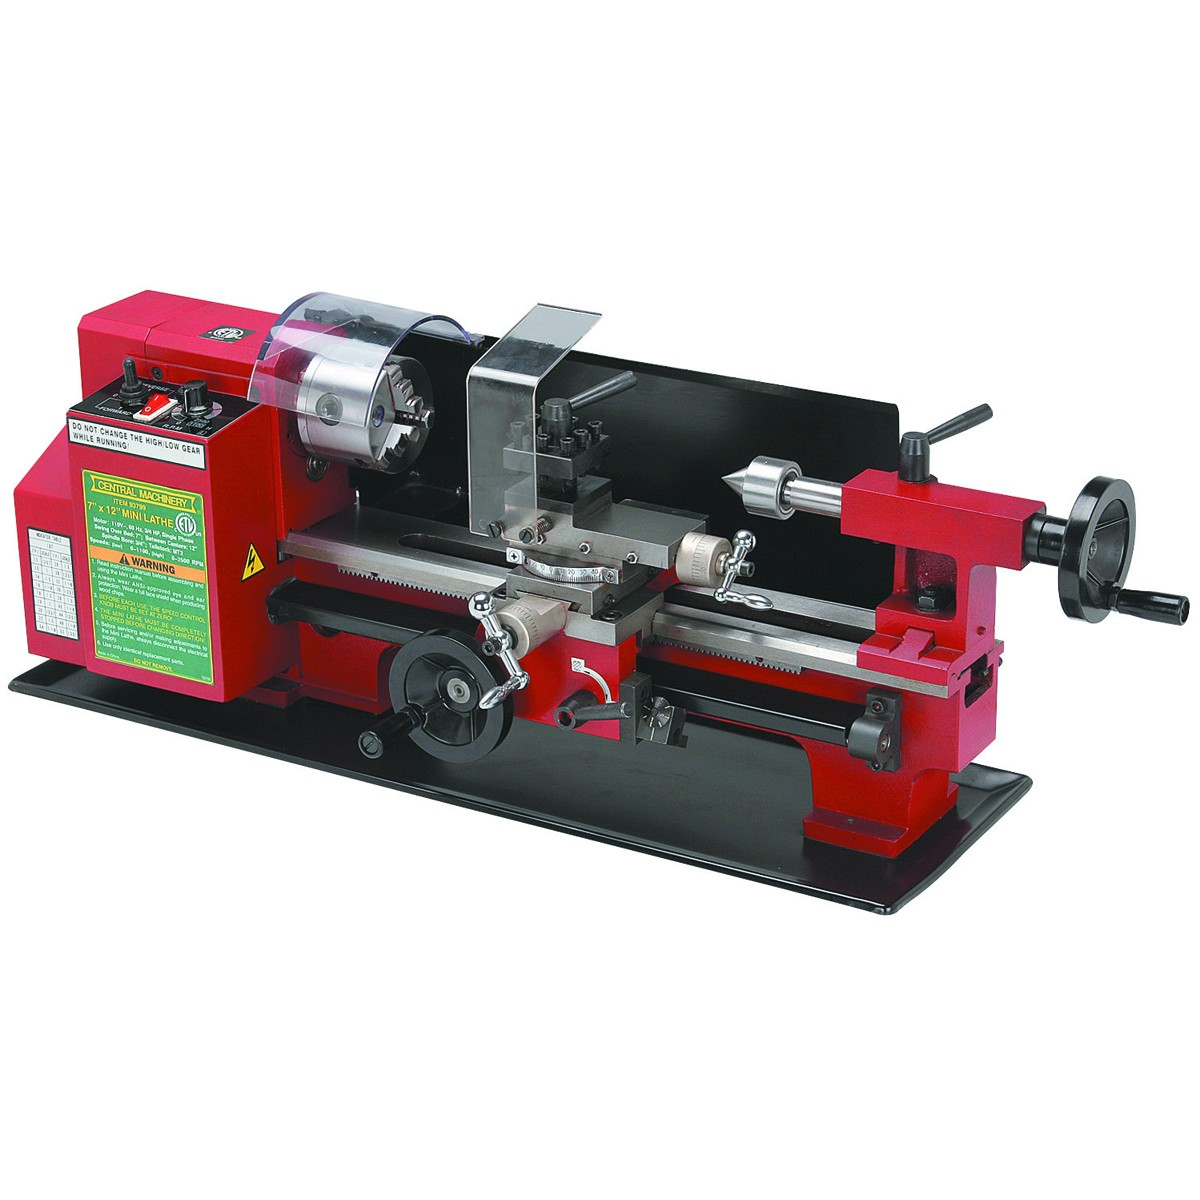 Things You Must Consider Before Buying a Metal Lathe